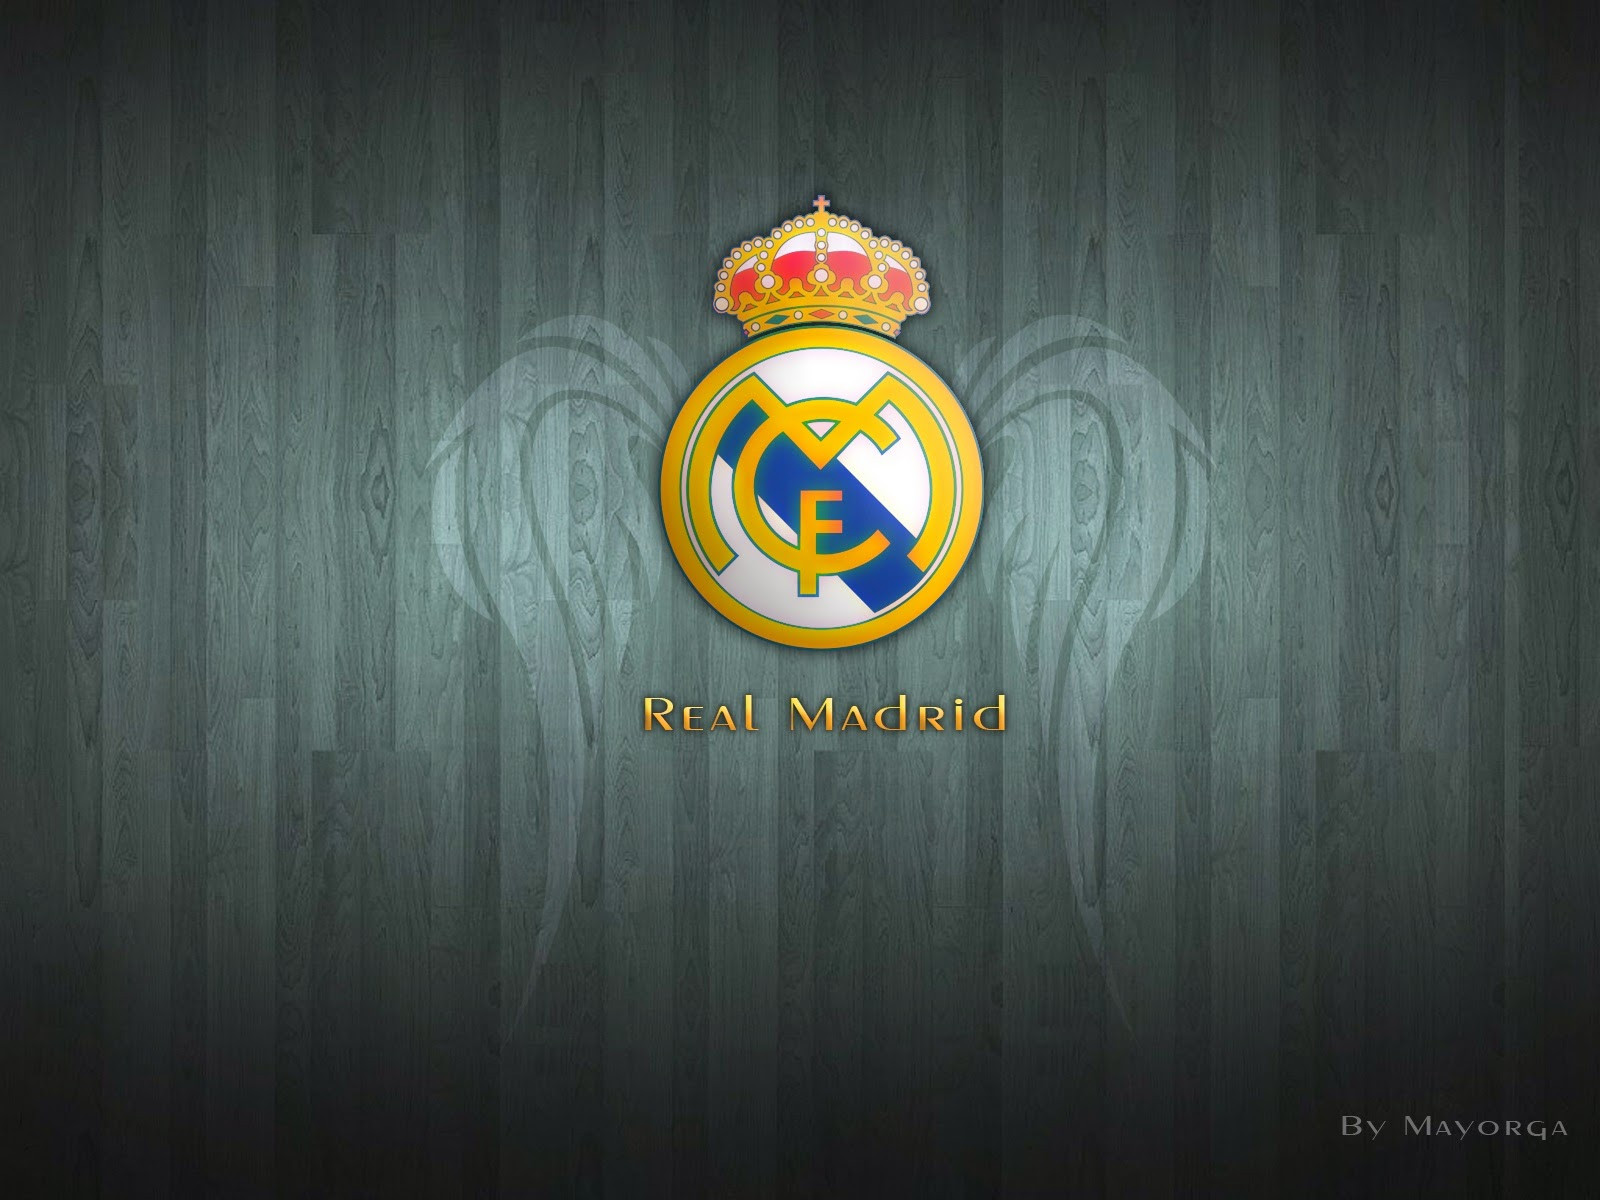 Wallpaper HD 2016: Real Madrid Club Wallpaper